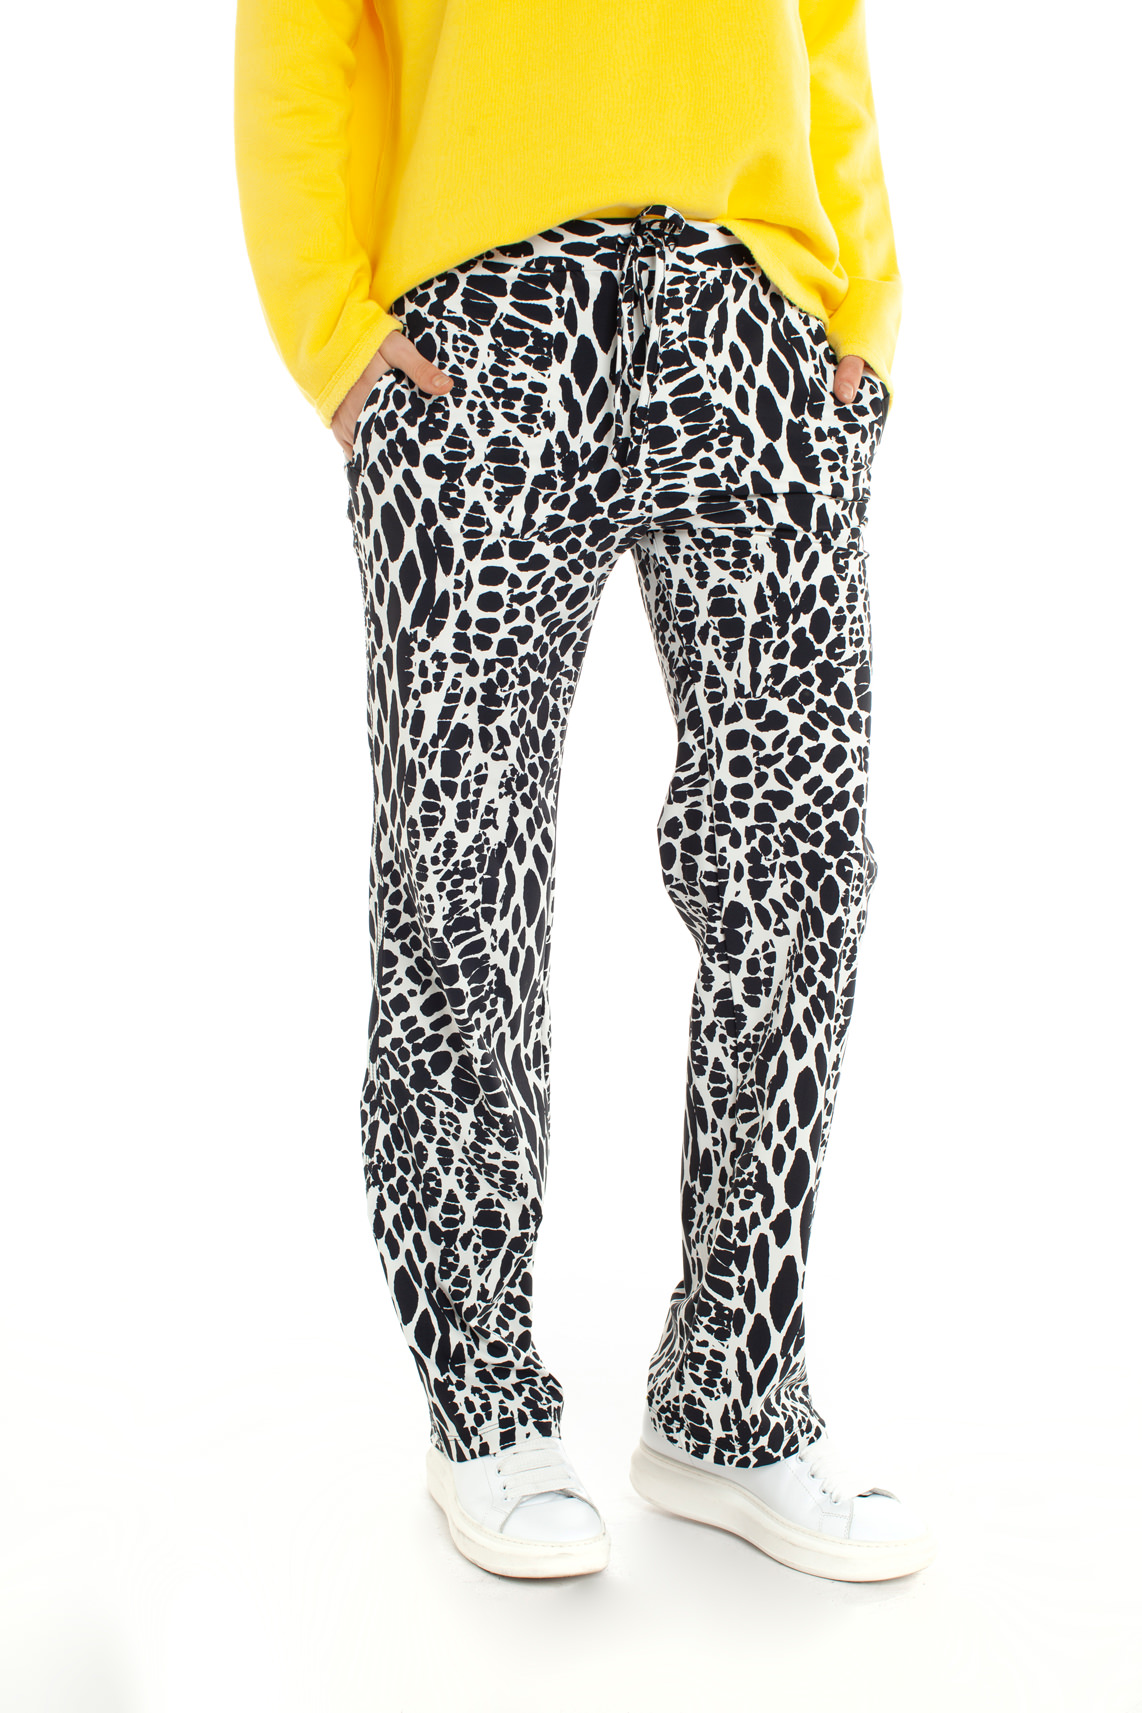 Penn & Ink Dames Broek met animalprint wit